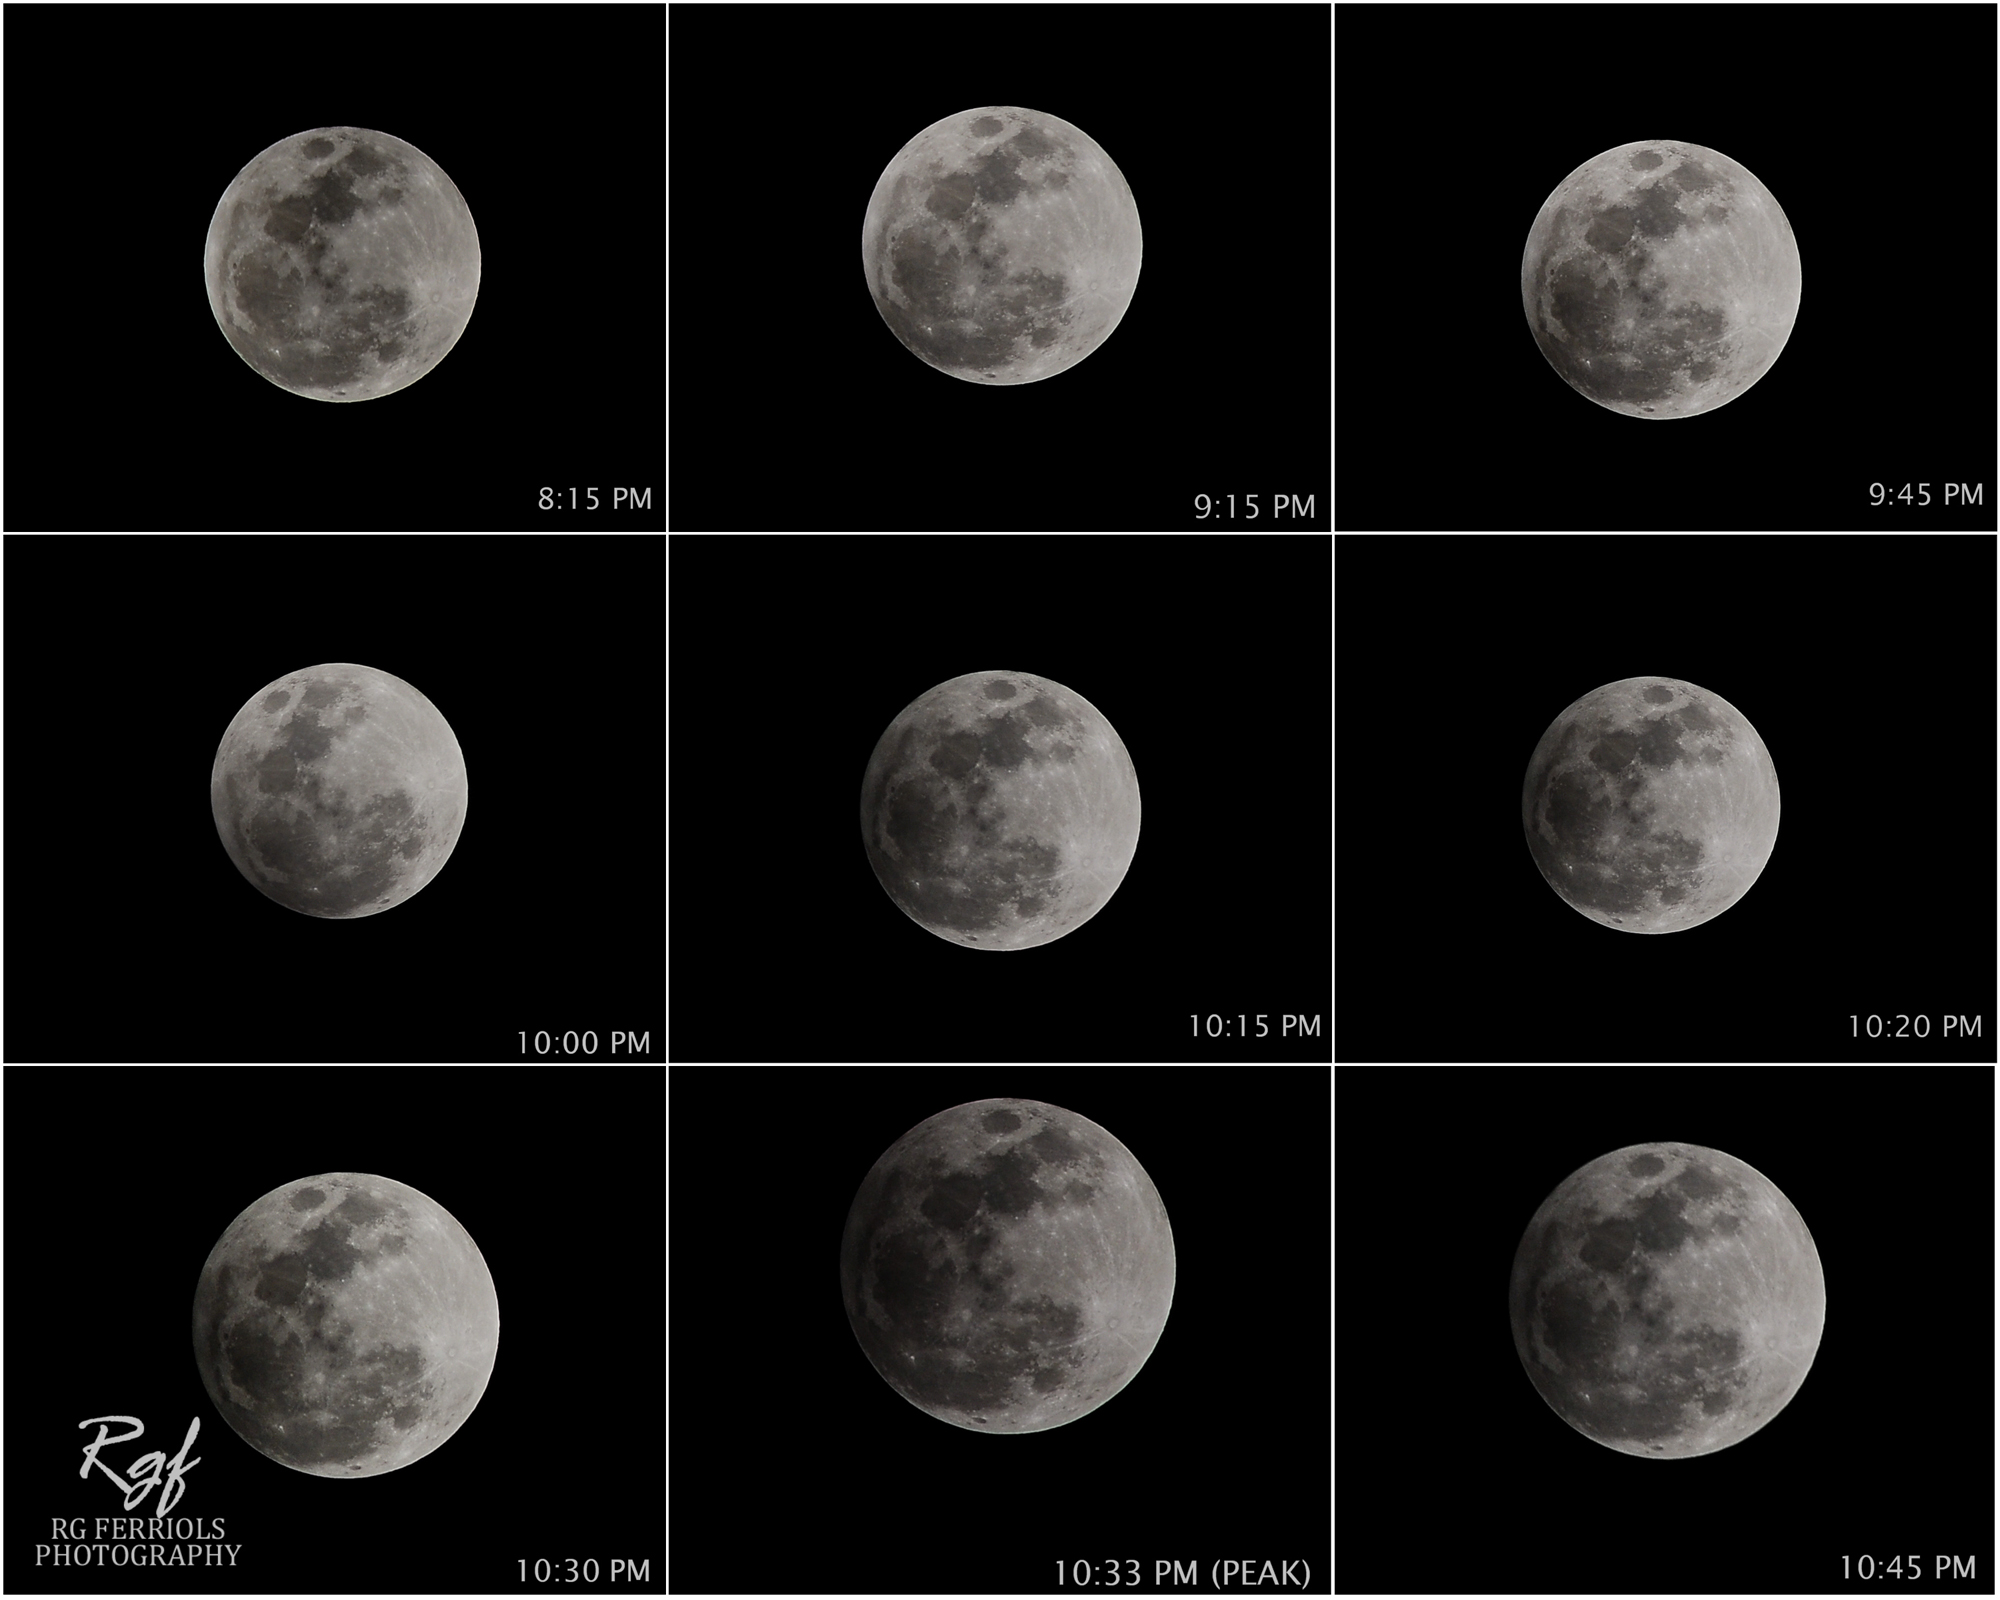 Penumbral Lunar Eclipse Phases of 2012: Rg Ferriols